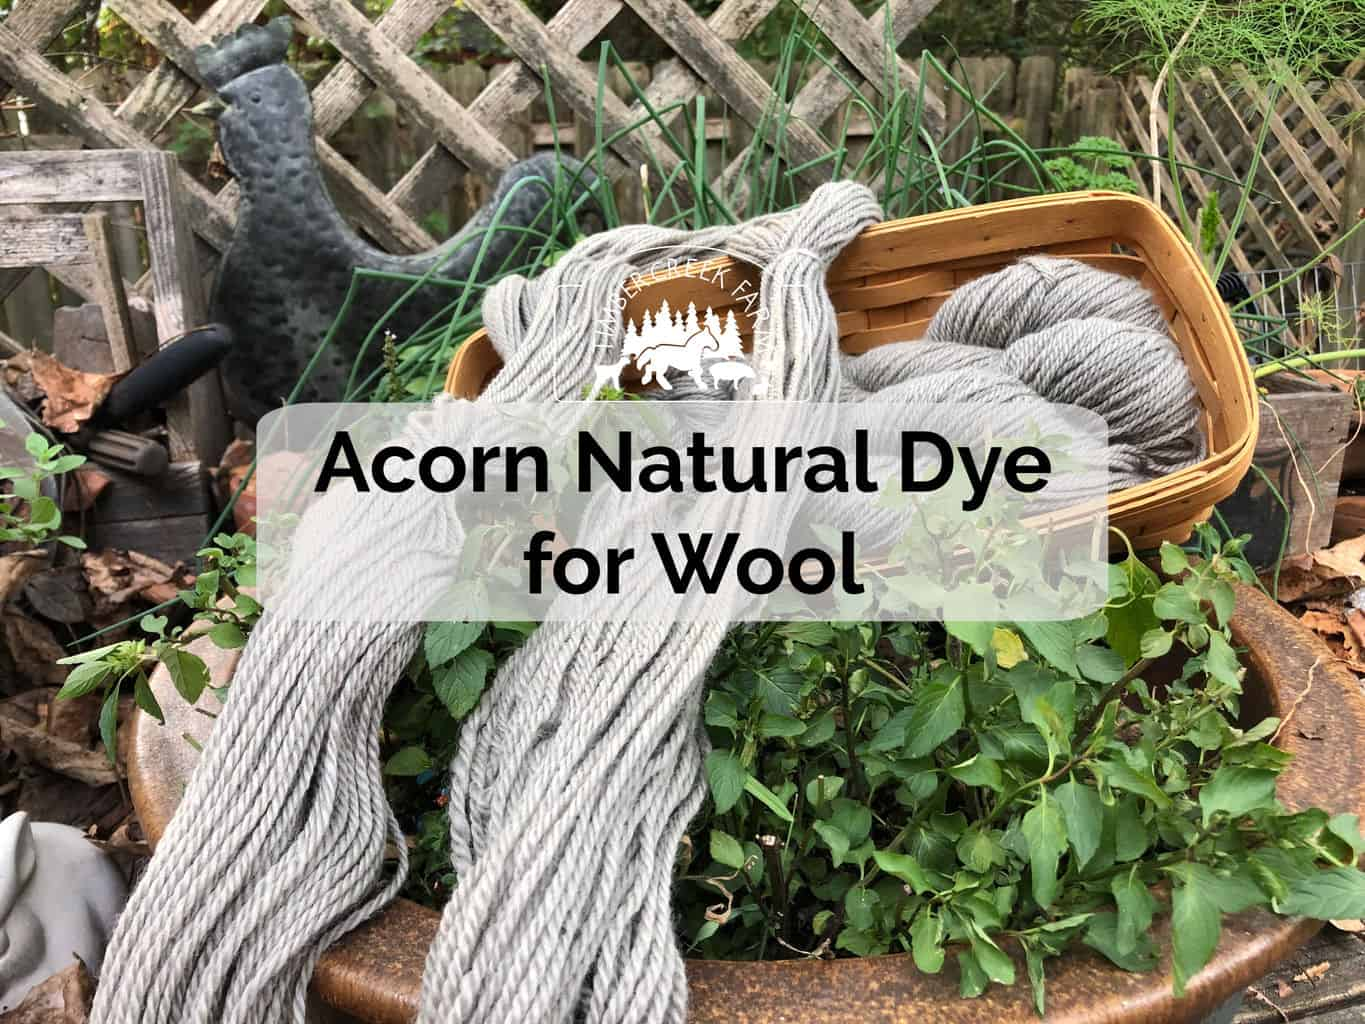 Acorn natural dye for wool